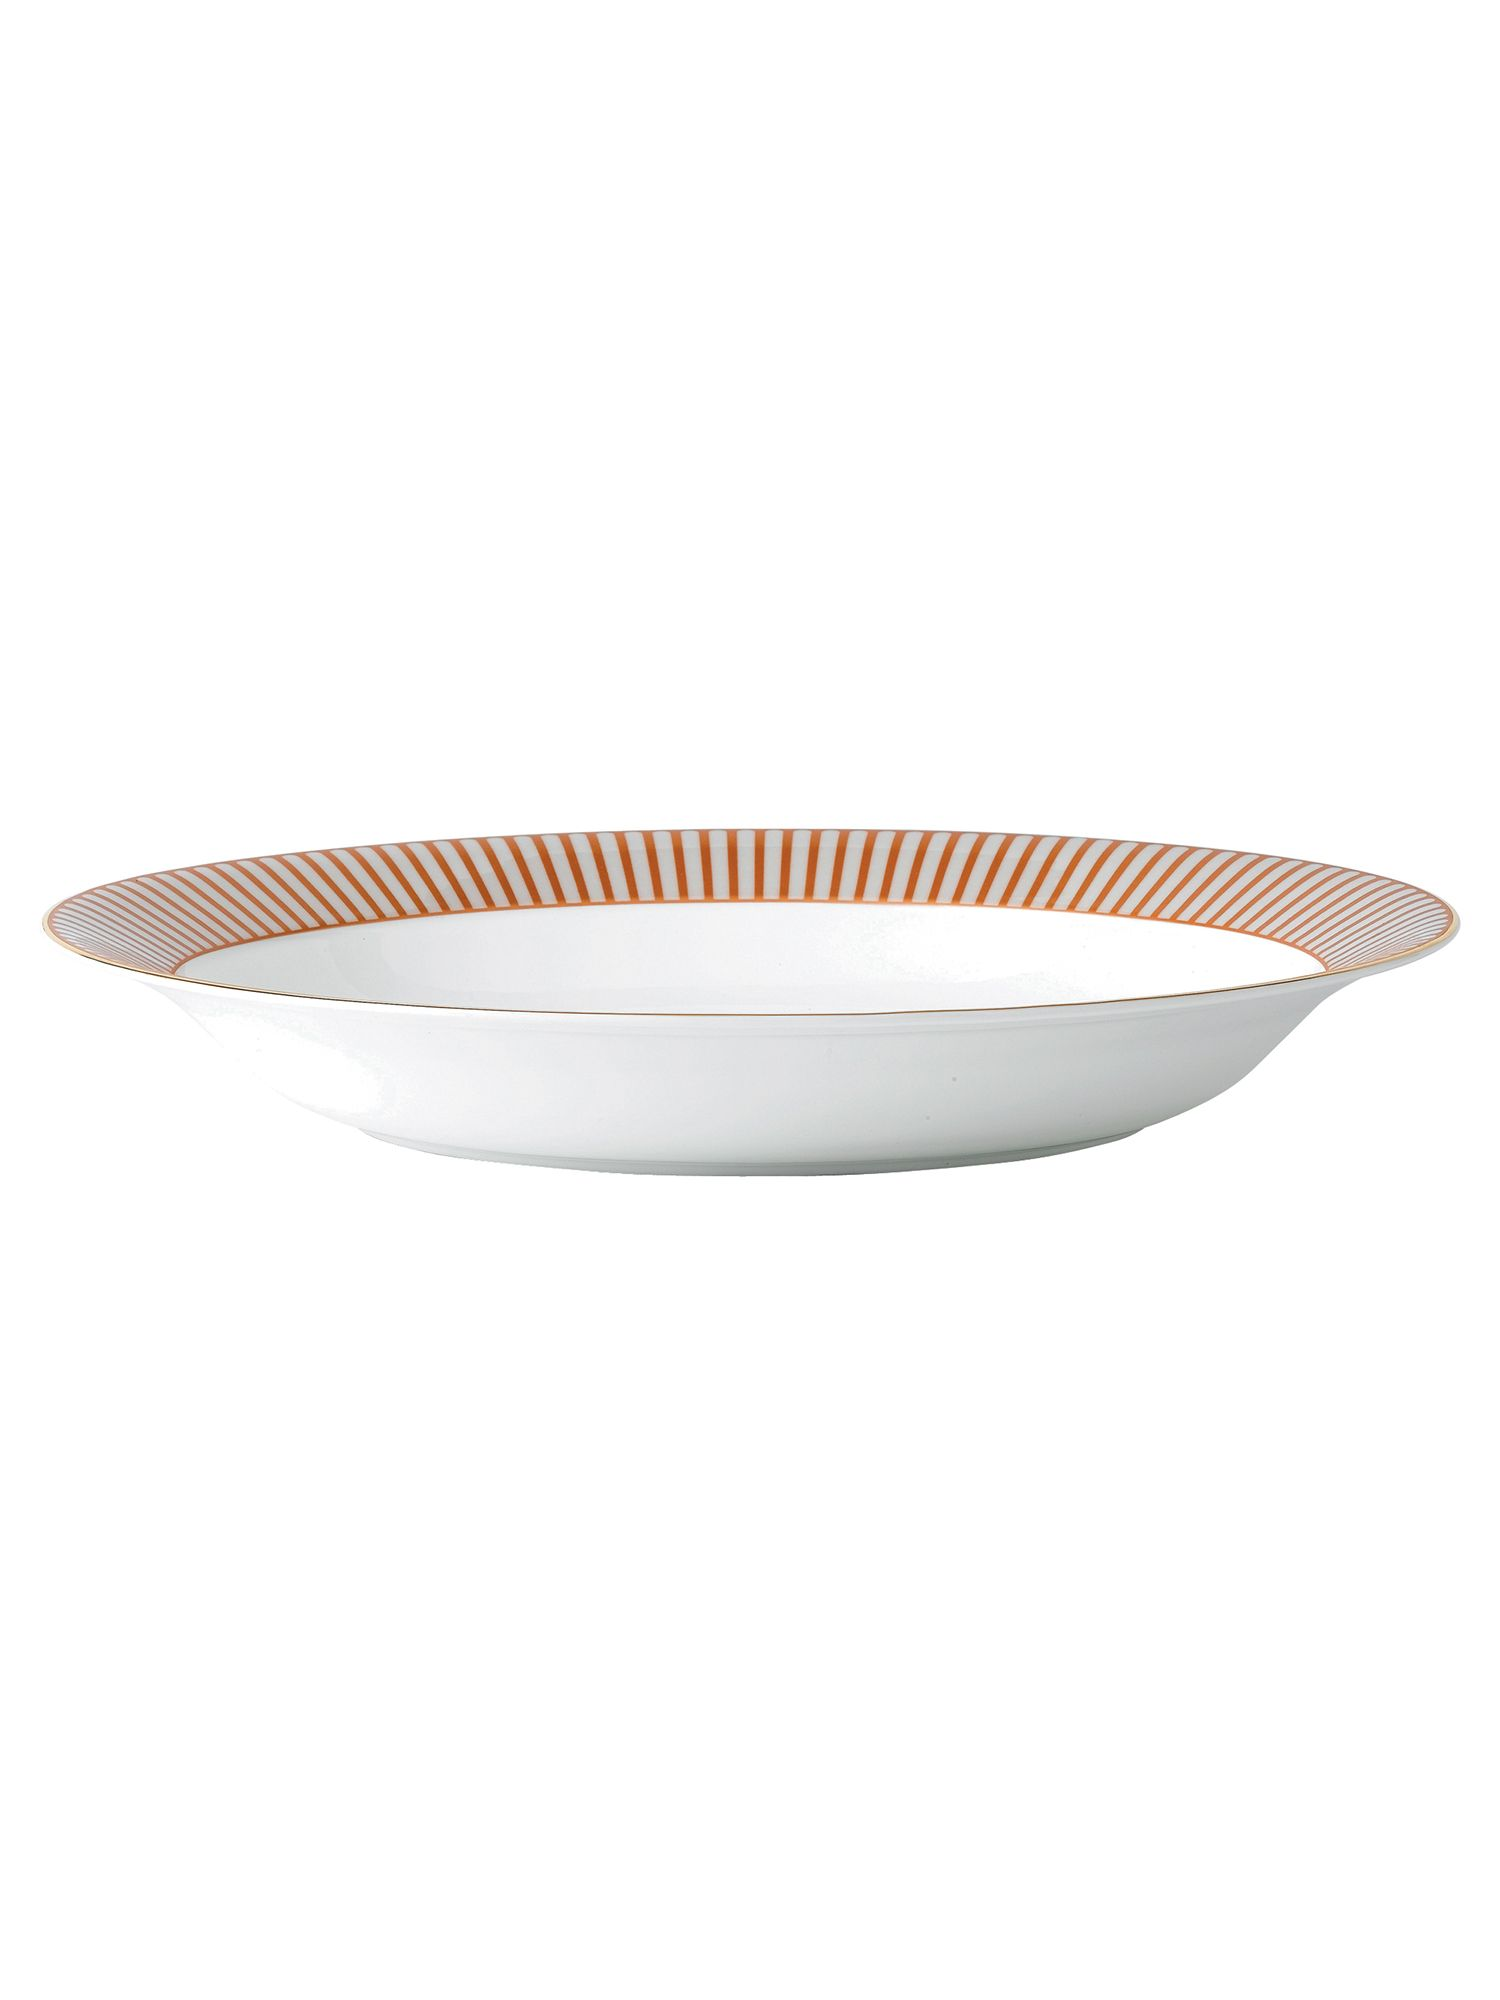 Palladian oval serving bowl 34cm